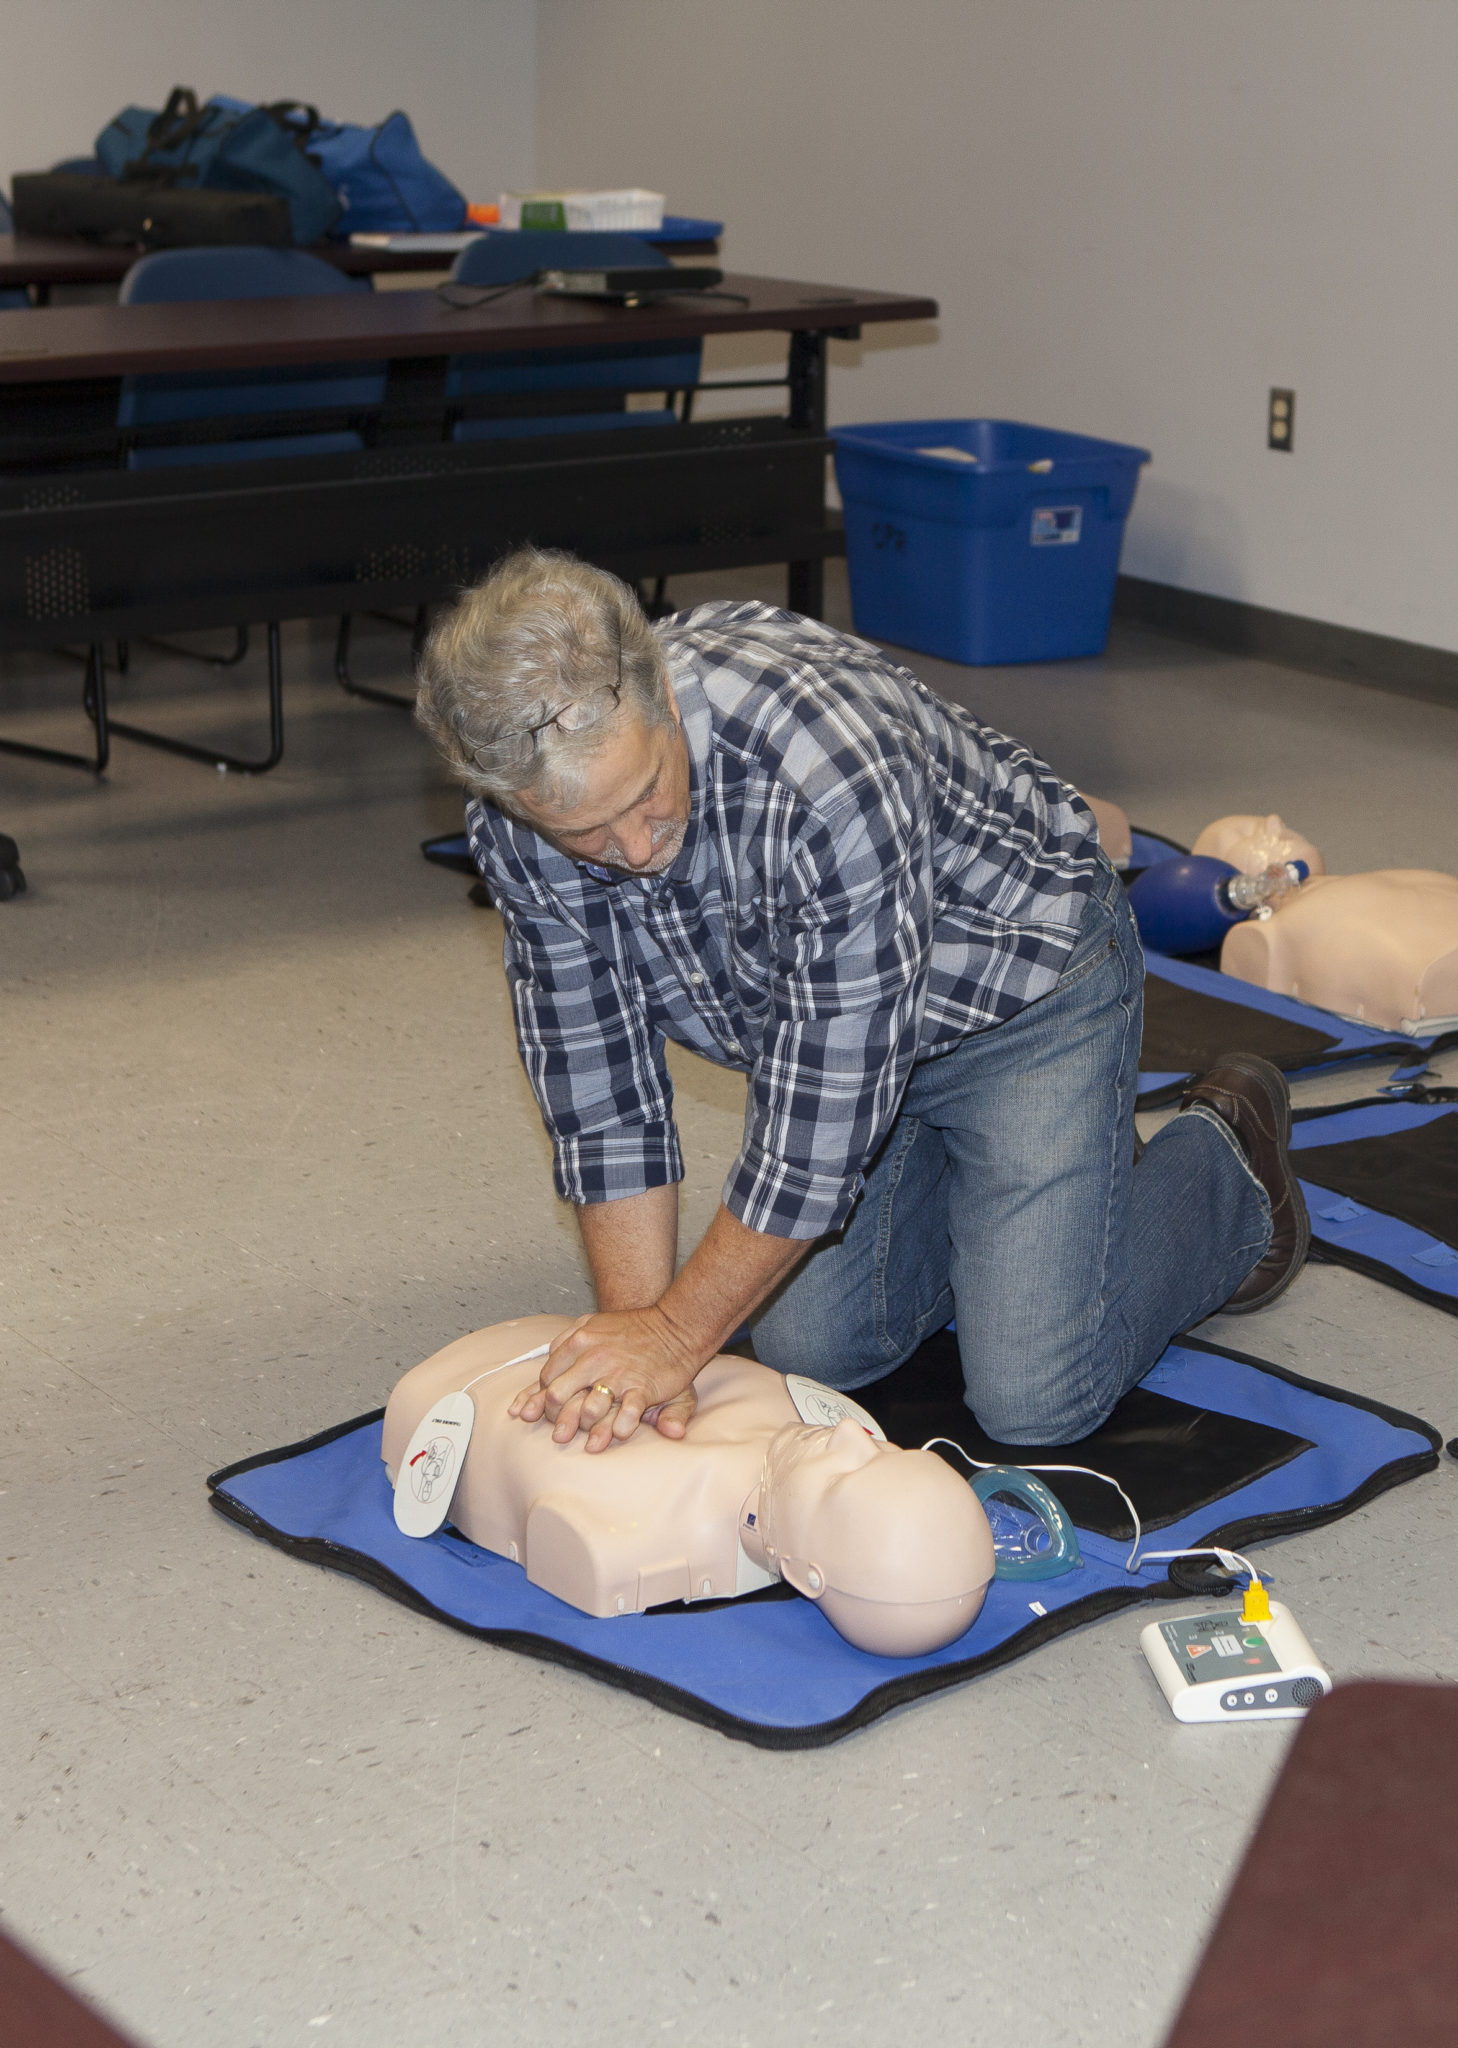 Pulse cpr augusta news cpr class martinez augusta xflitez Image collections